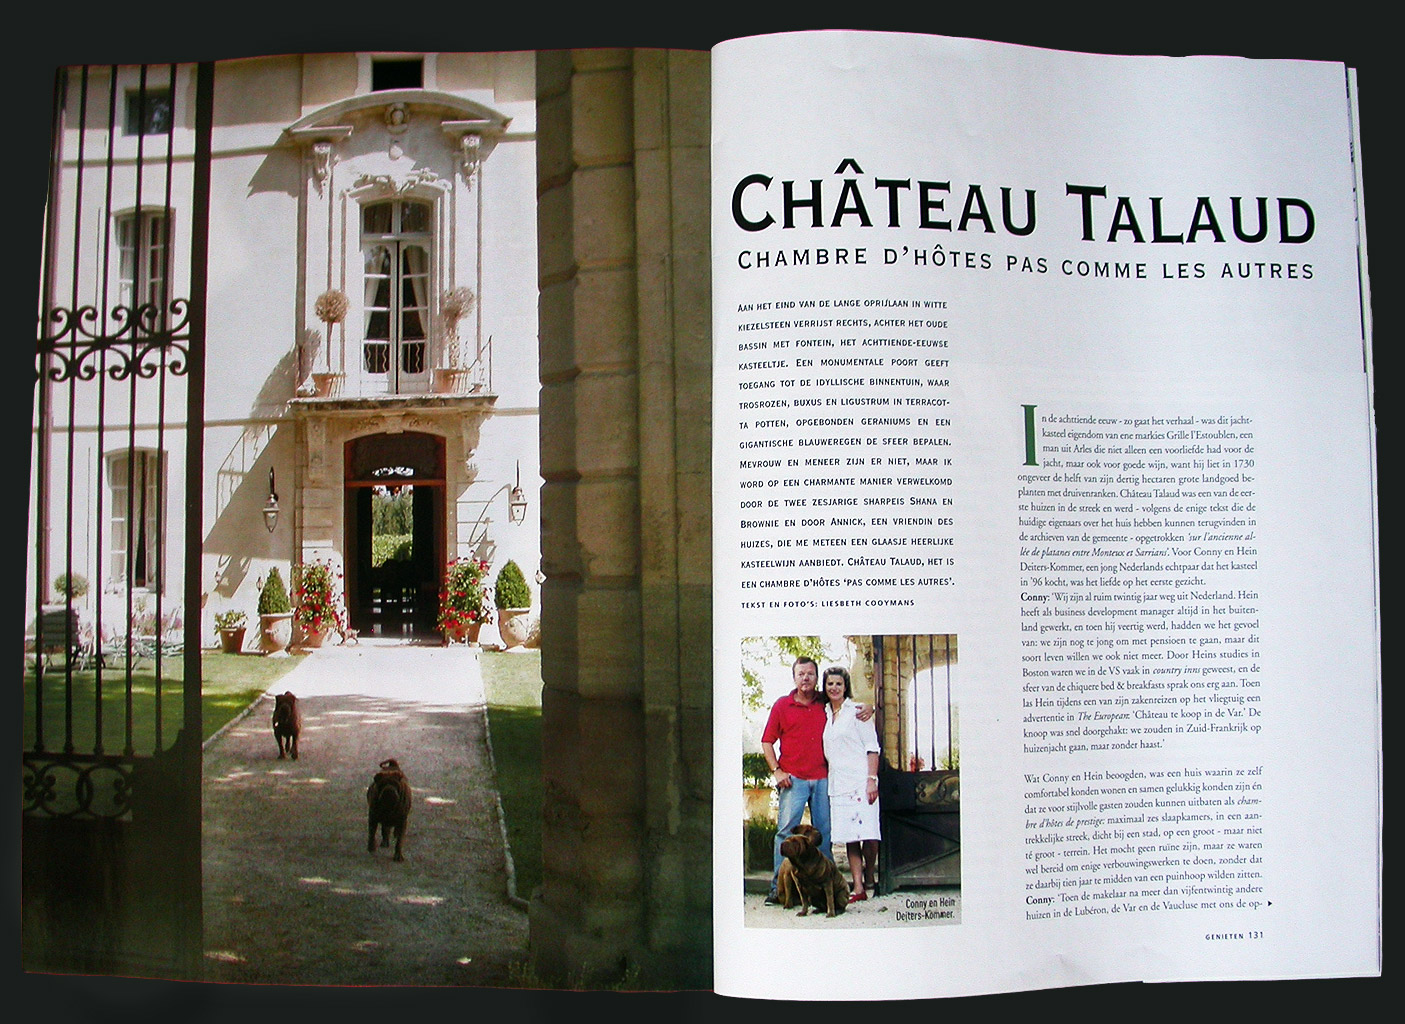 Chateau Talaud Press